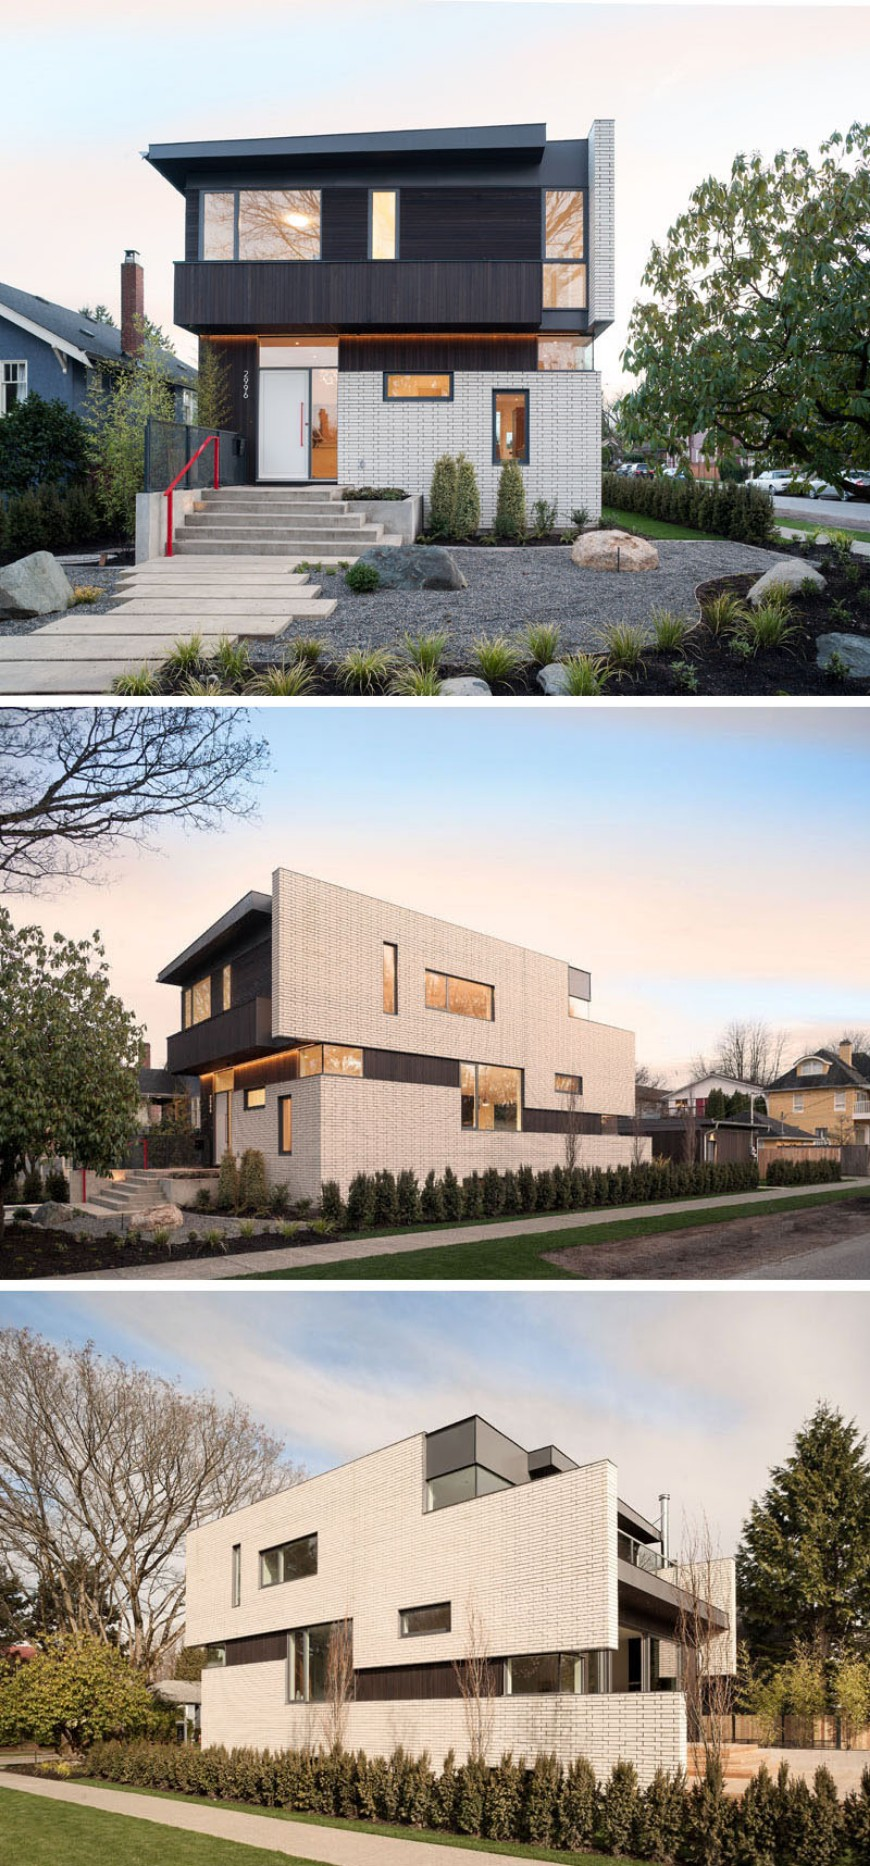 modern houses Fall in Love with these Modern Houses Made of Brick Fall in Love with these Modern Houses Made of Brick